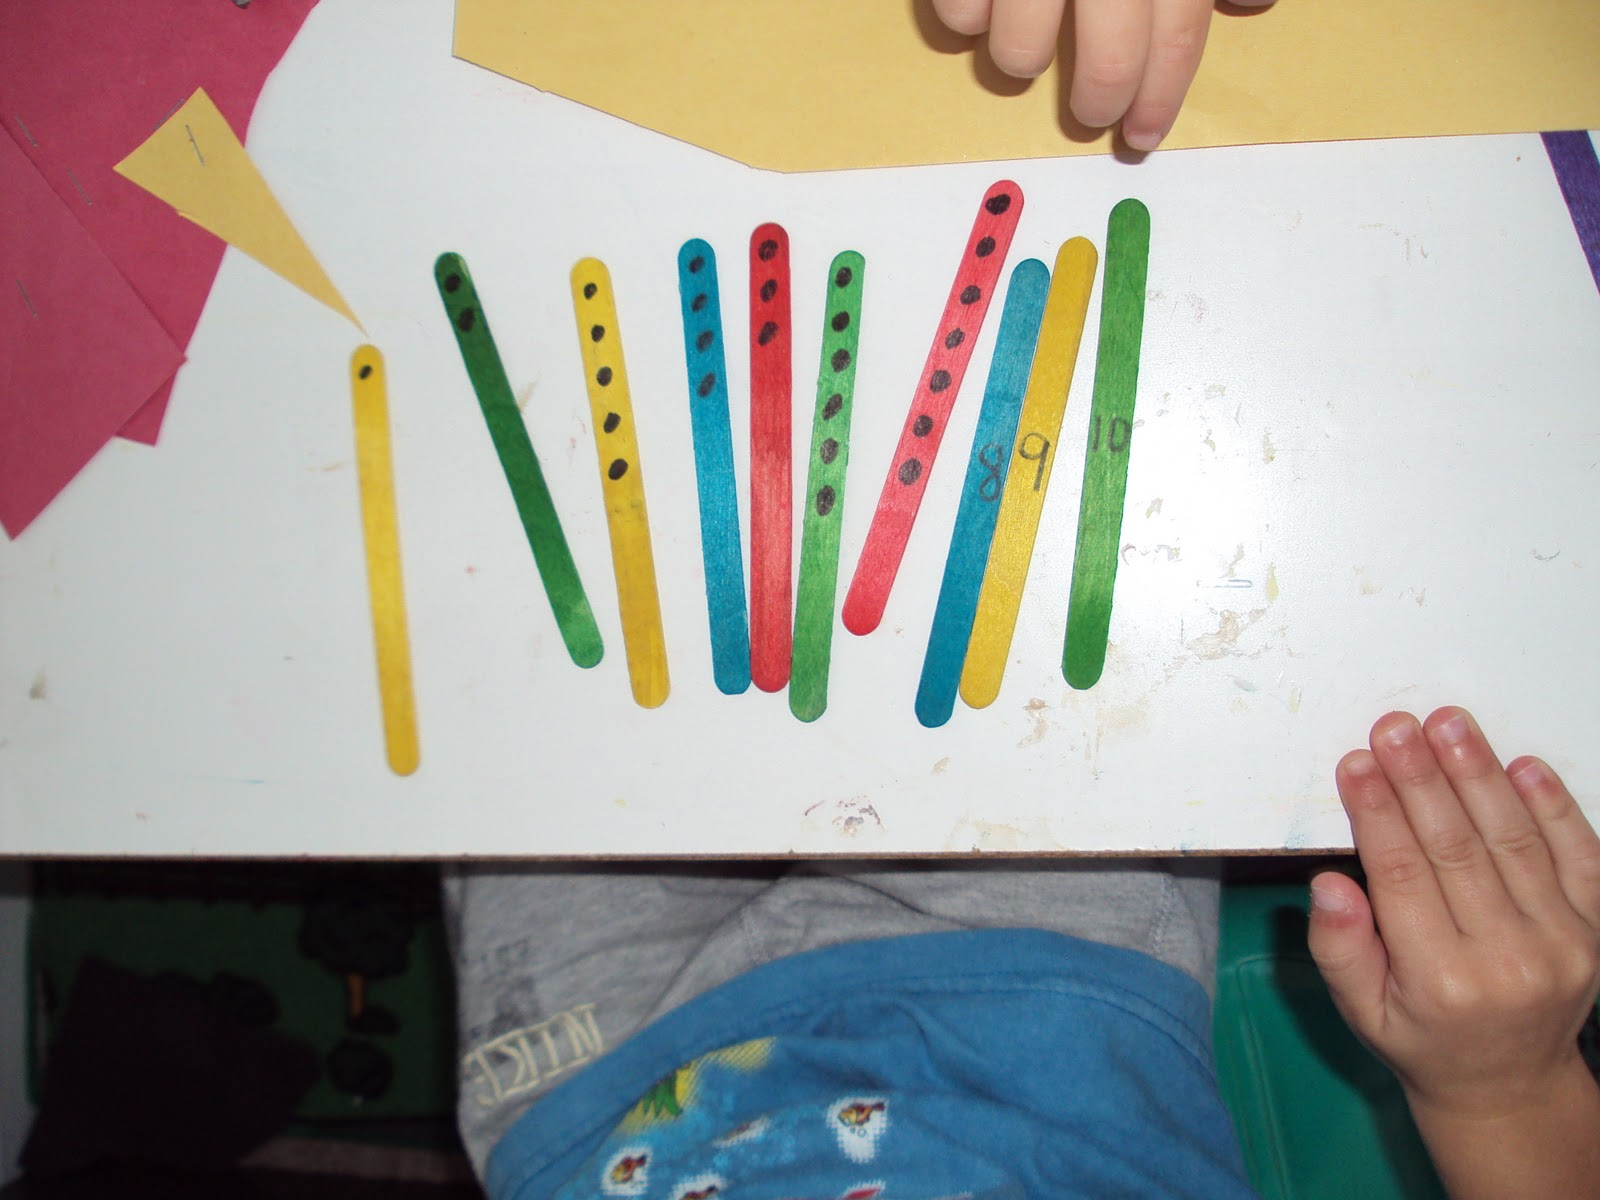 Time for play 56 pick up sticks78 lay them straight time for play 56 pick up sticks78 lay them straight arubaitofo Choice Image